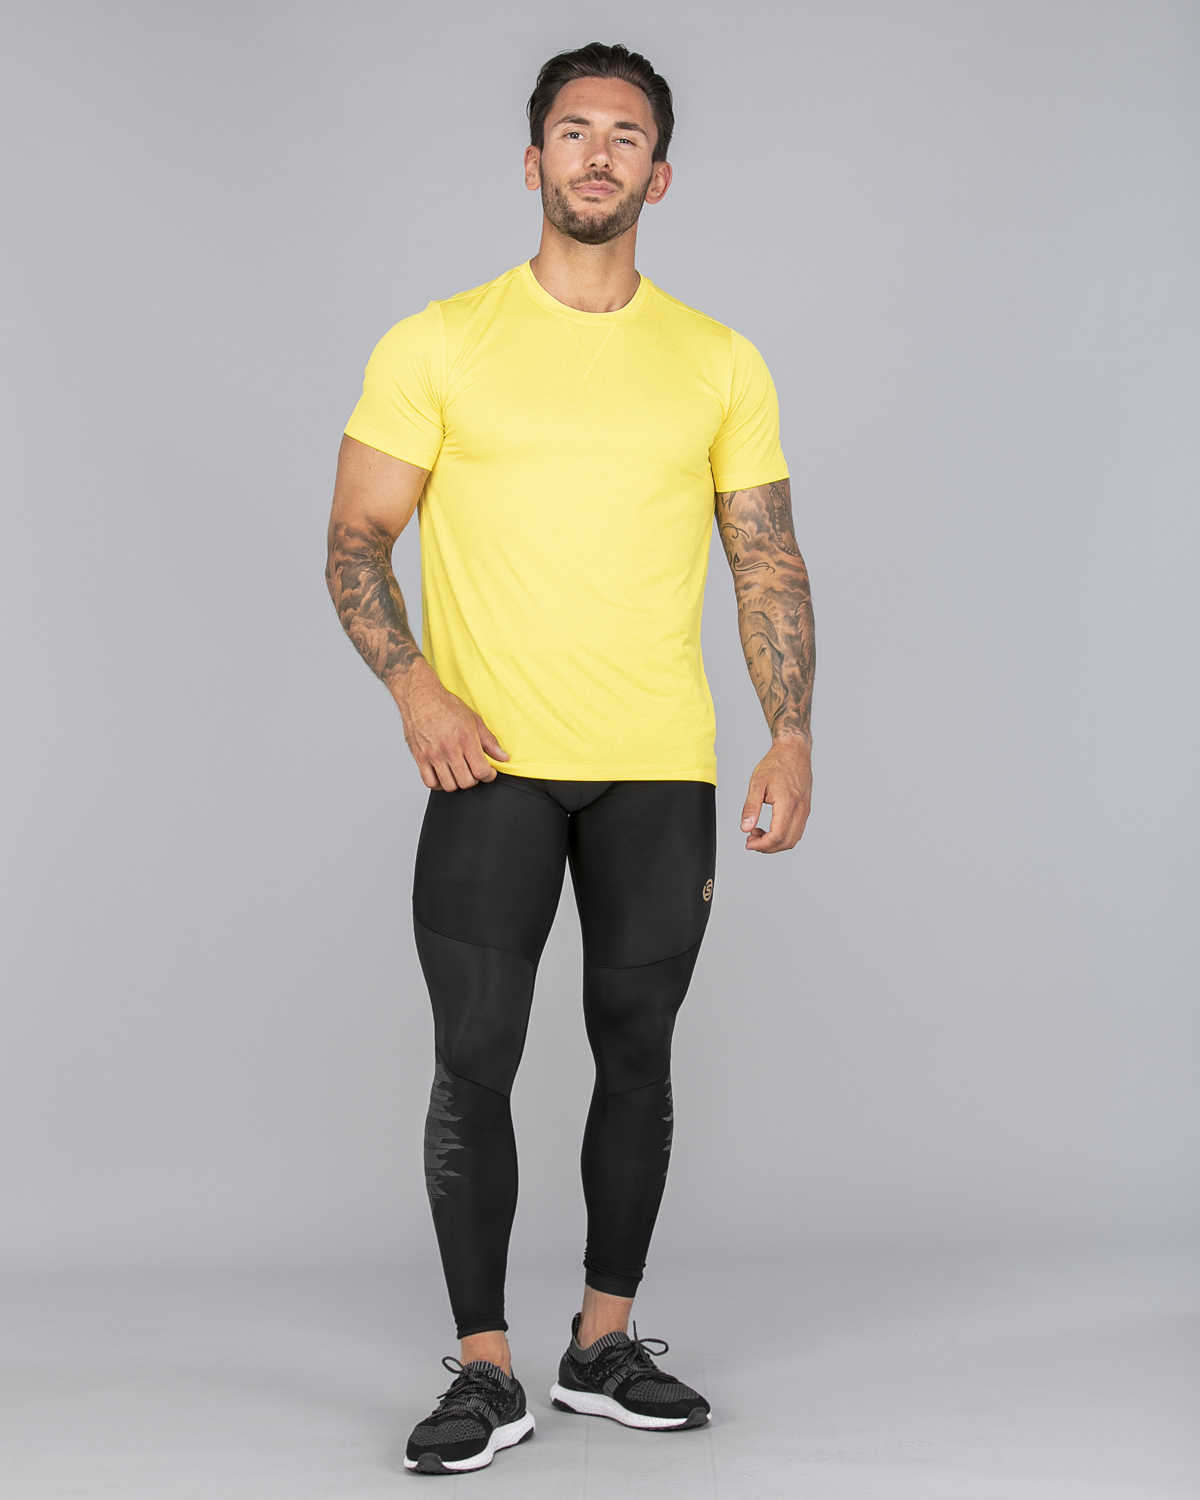 Skins Activewear Avatar Mens Round Neck Short Sleeve Tee CitronMarle (6)